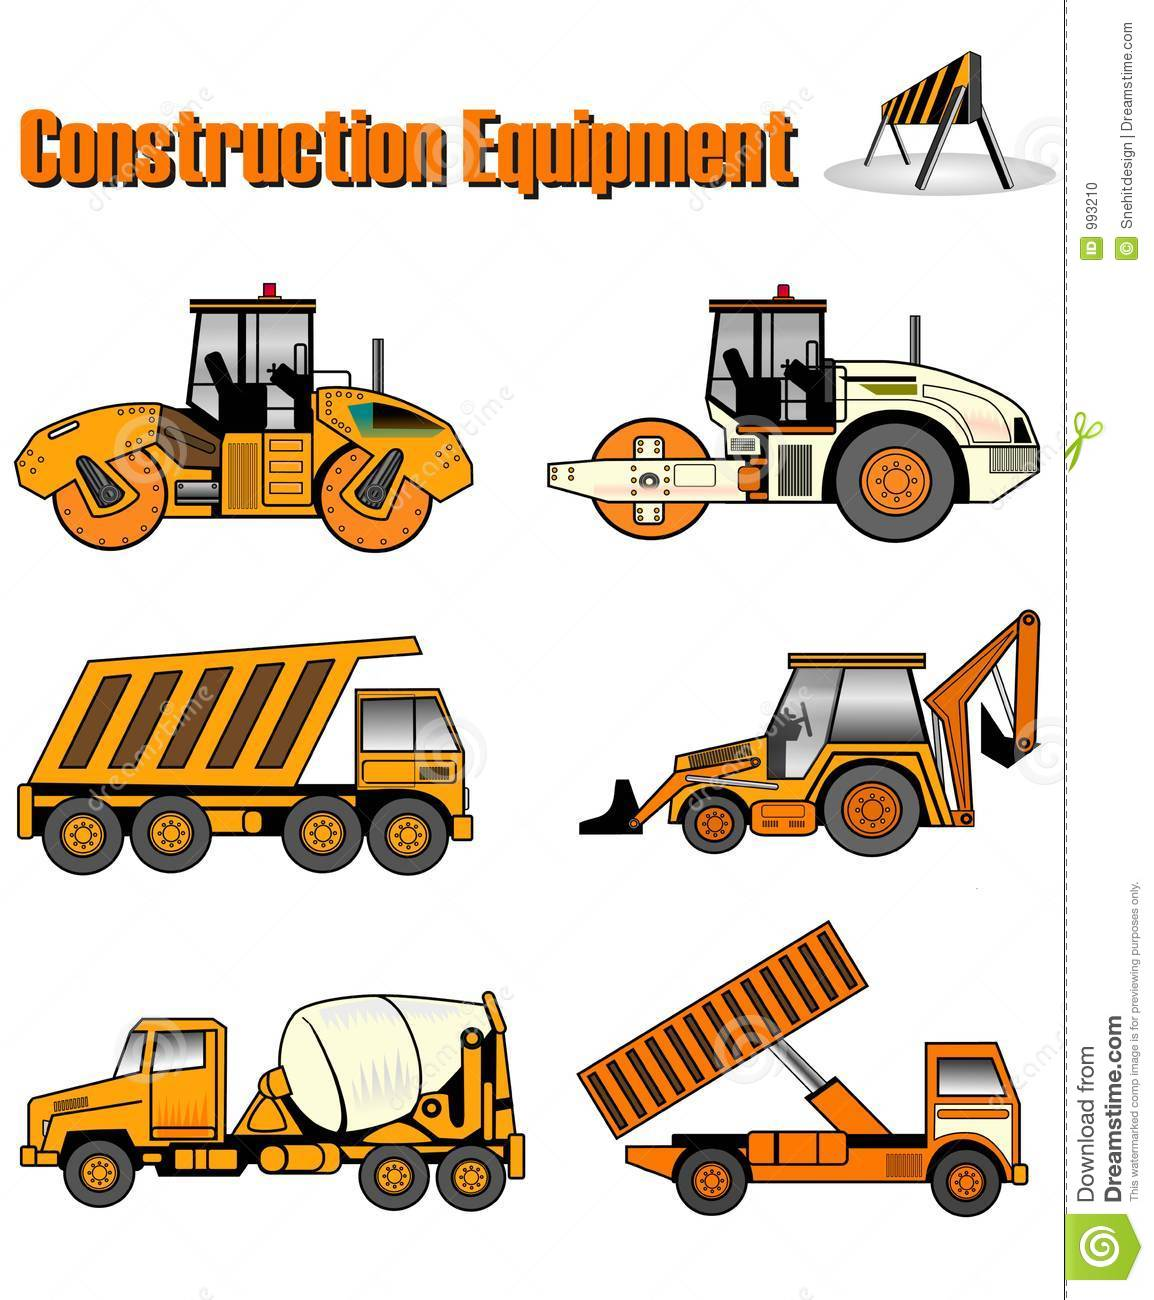 Construction machinery coloring pages - Construction Equipment Stock Photo Image 993210